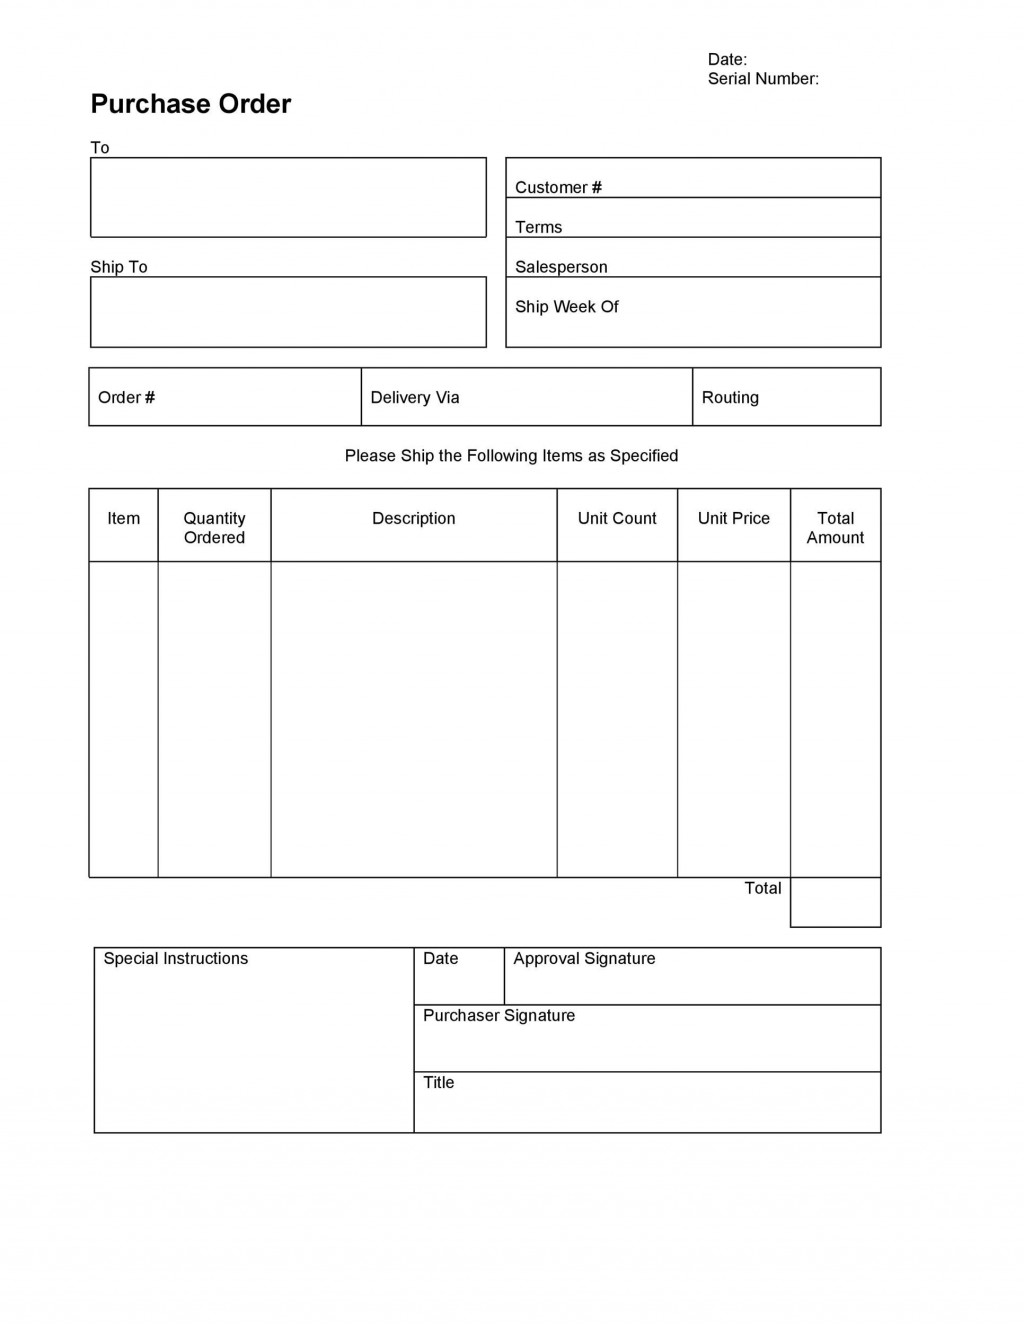 000 Archaicawful Free Purchase Order Template Word Sample  Microsoft DownloadLarge